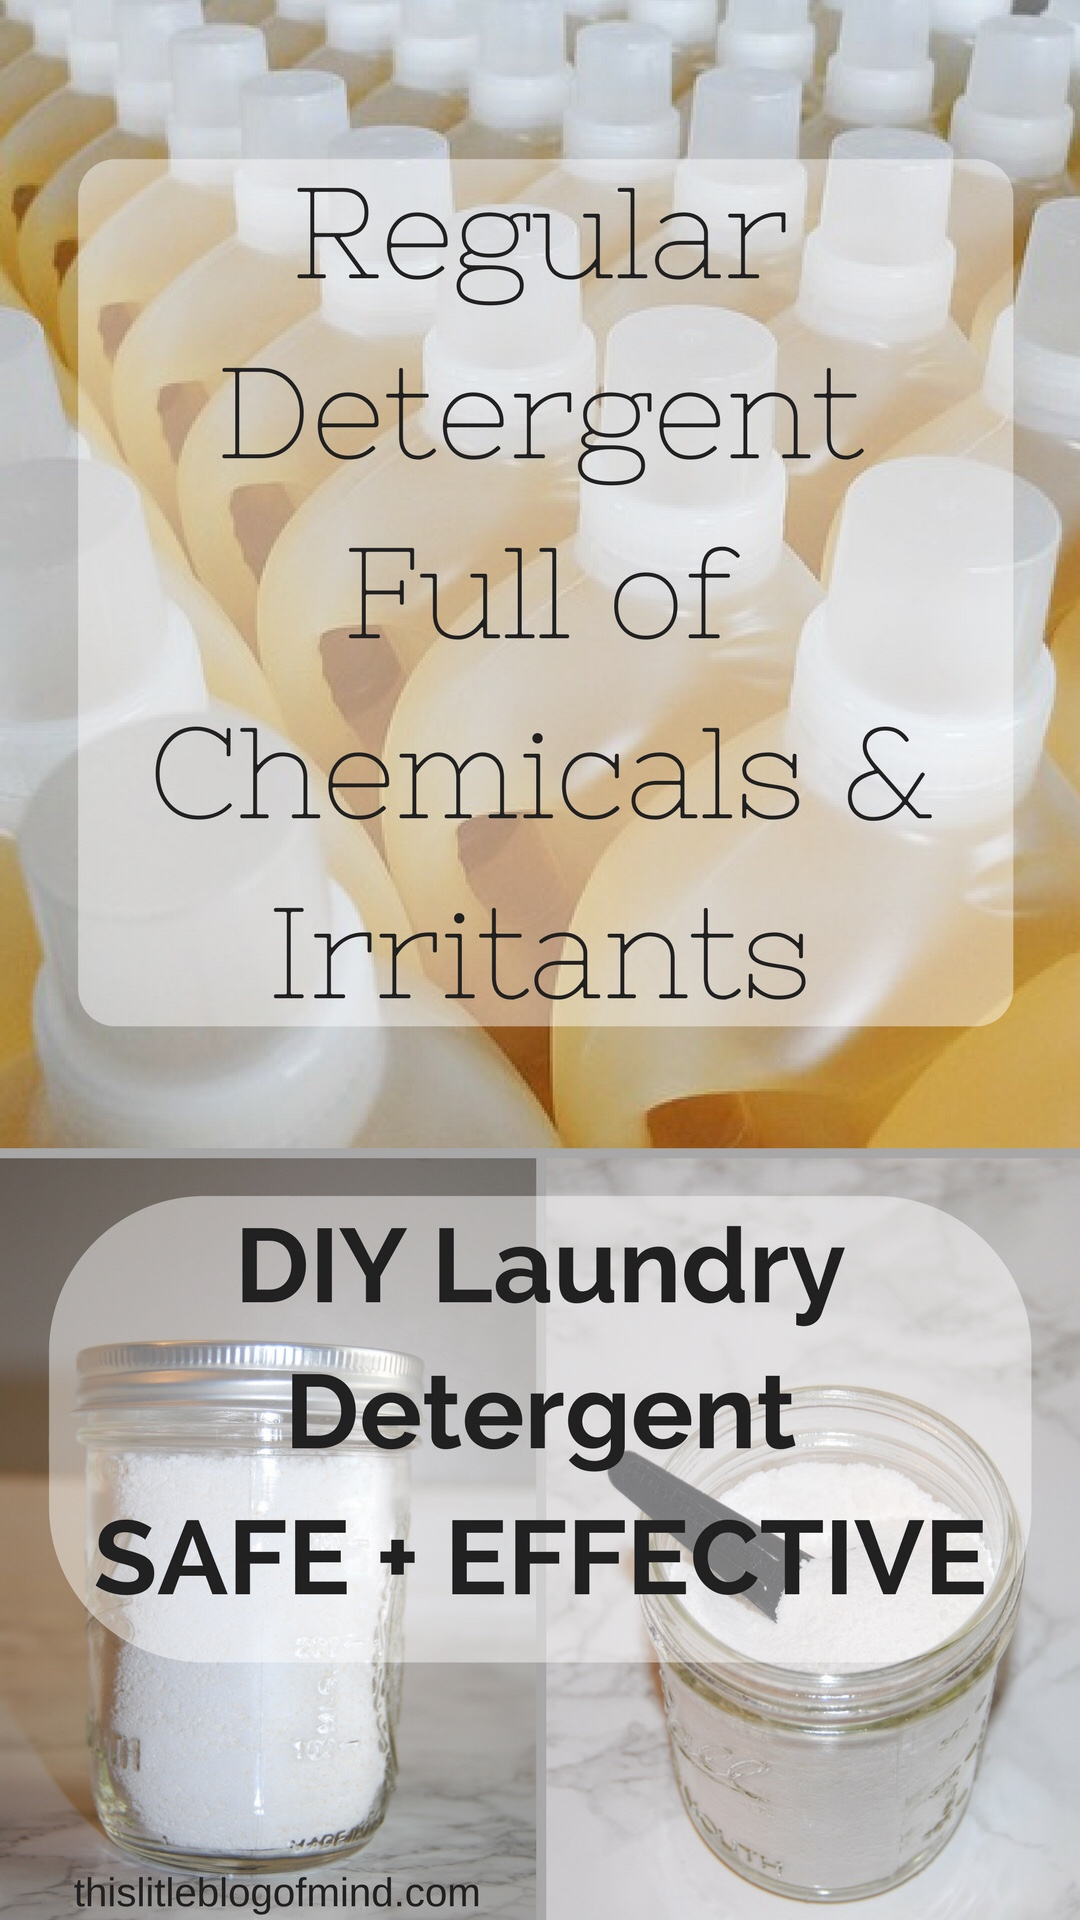 DIY homemade laundry detergent. Safe + effective. Only 3 ingredients and 5 minutes. | simplywellfamily.com